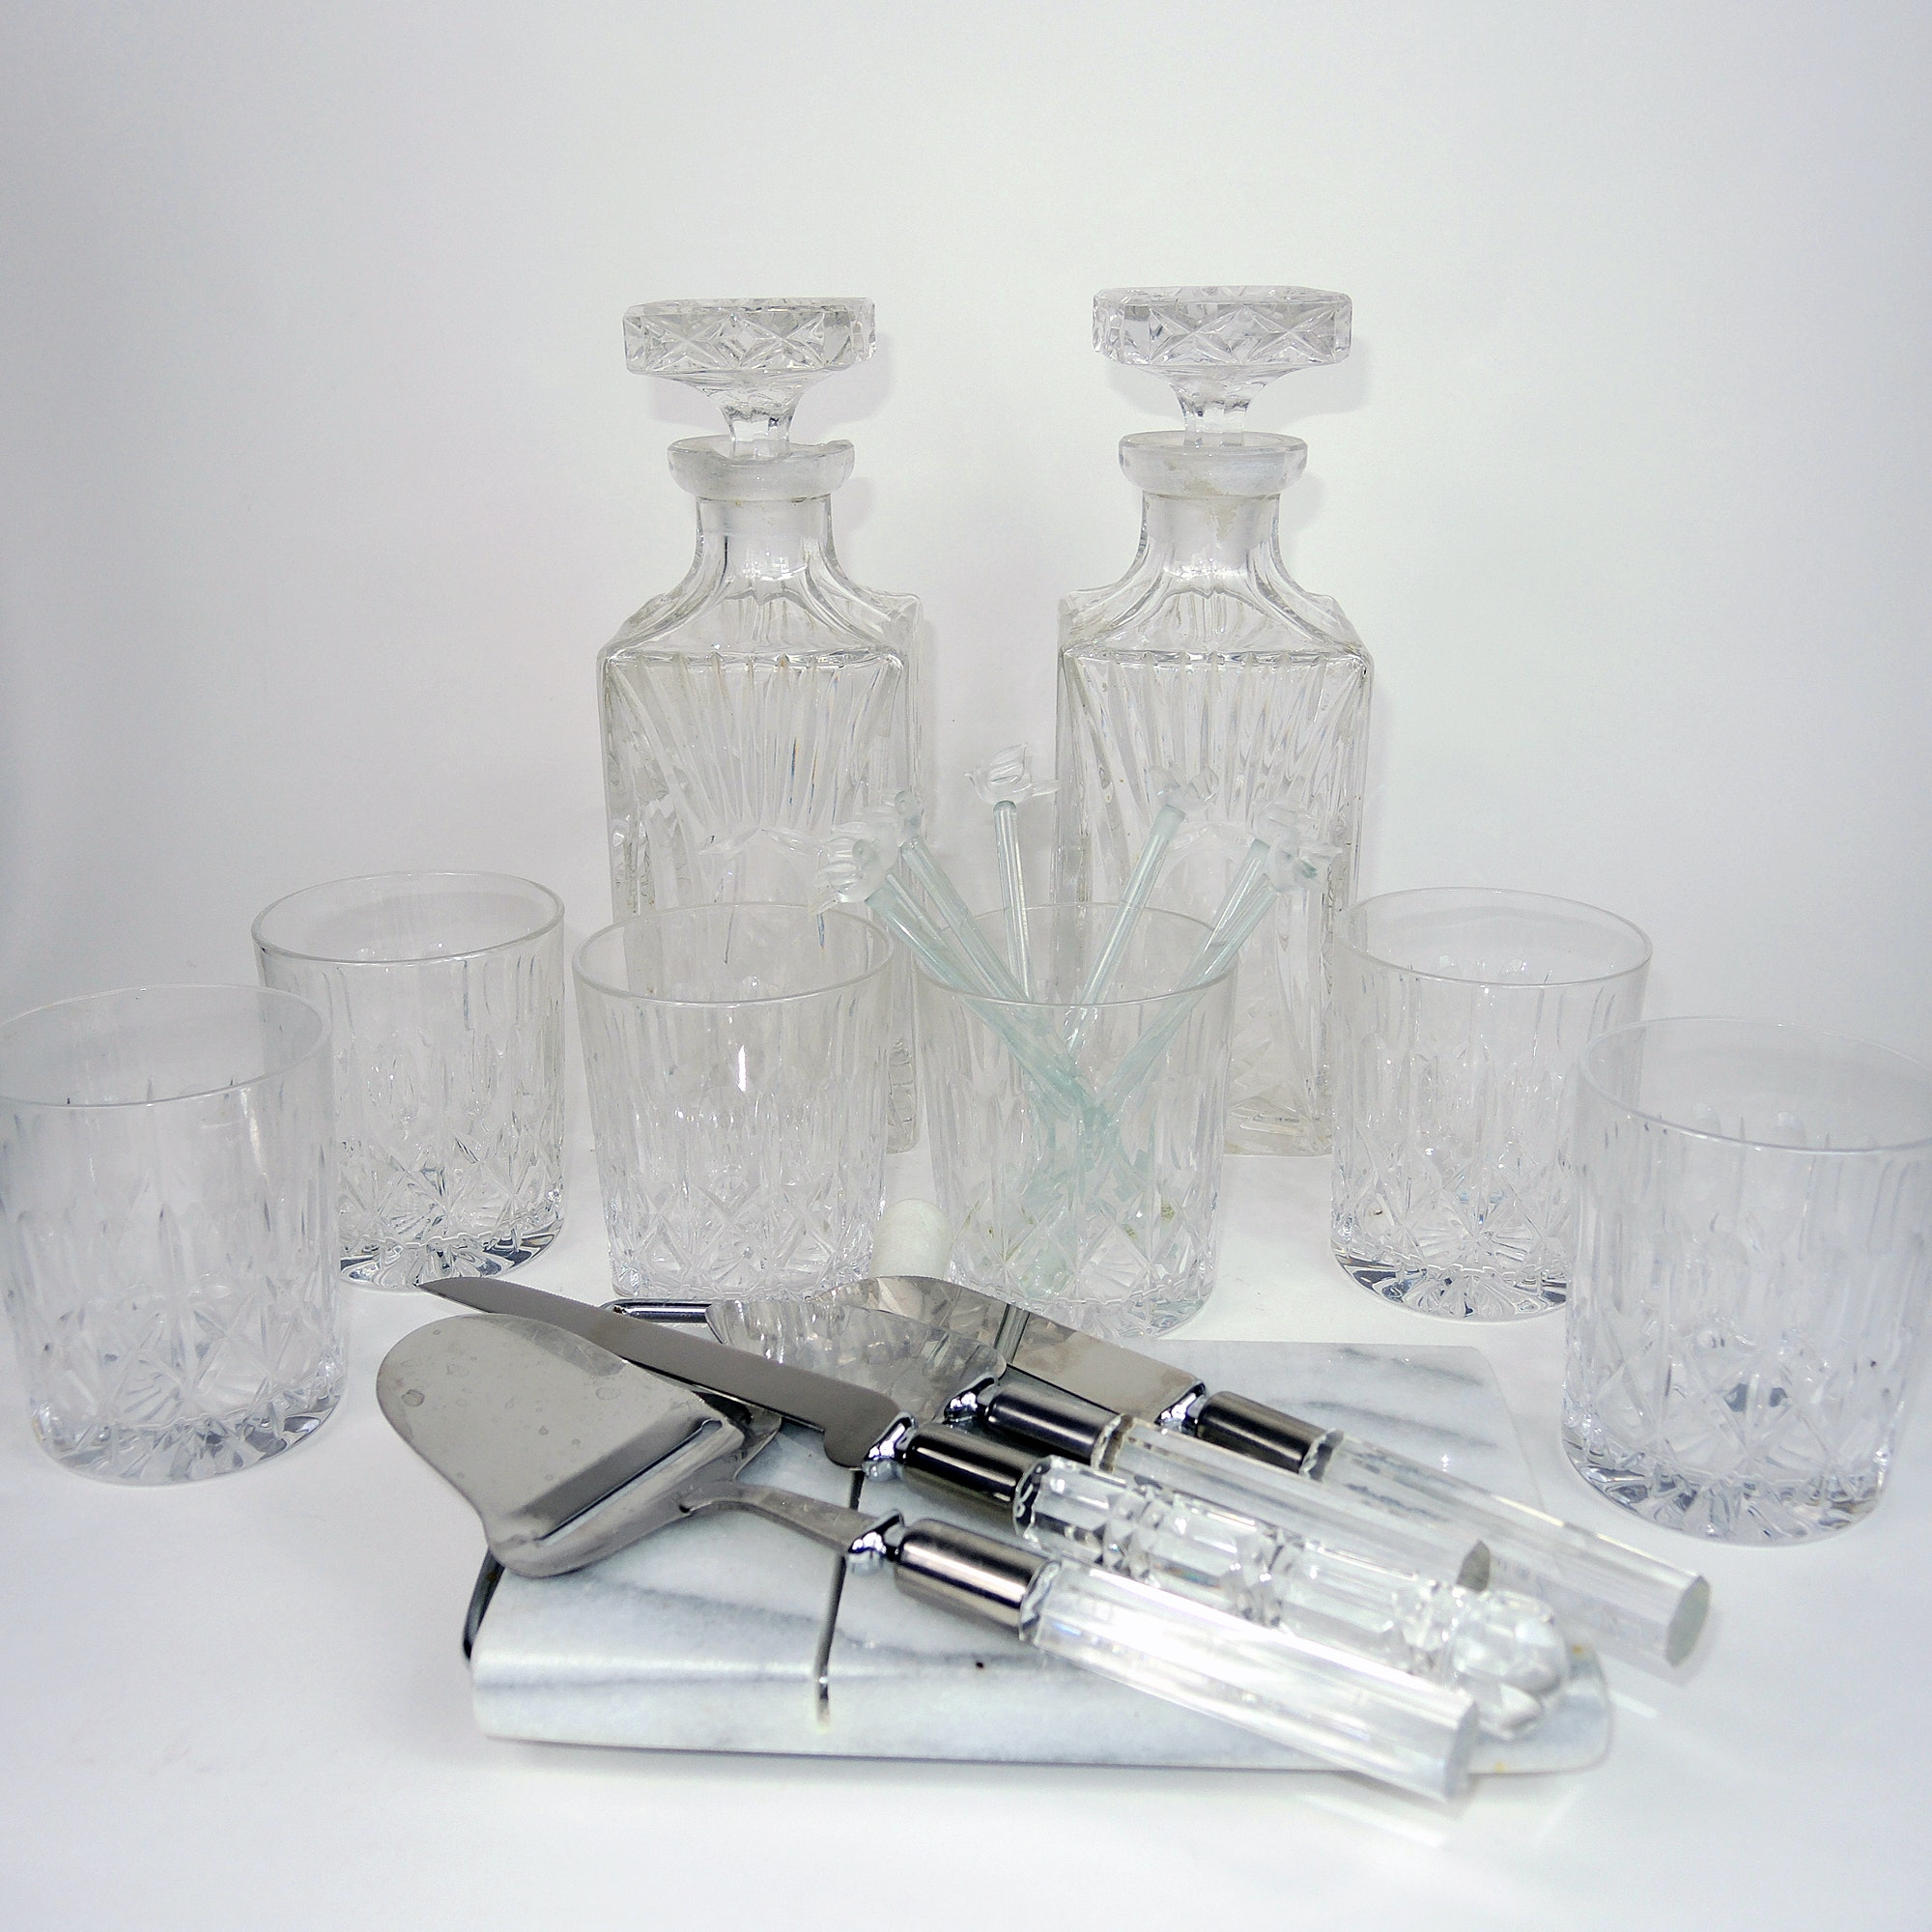 Crystal Glasses, Decanter Set and Marble Cheese Cutter